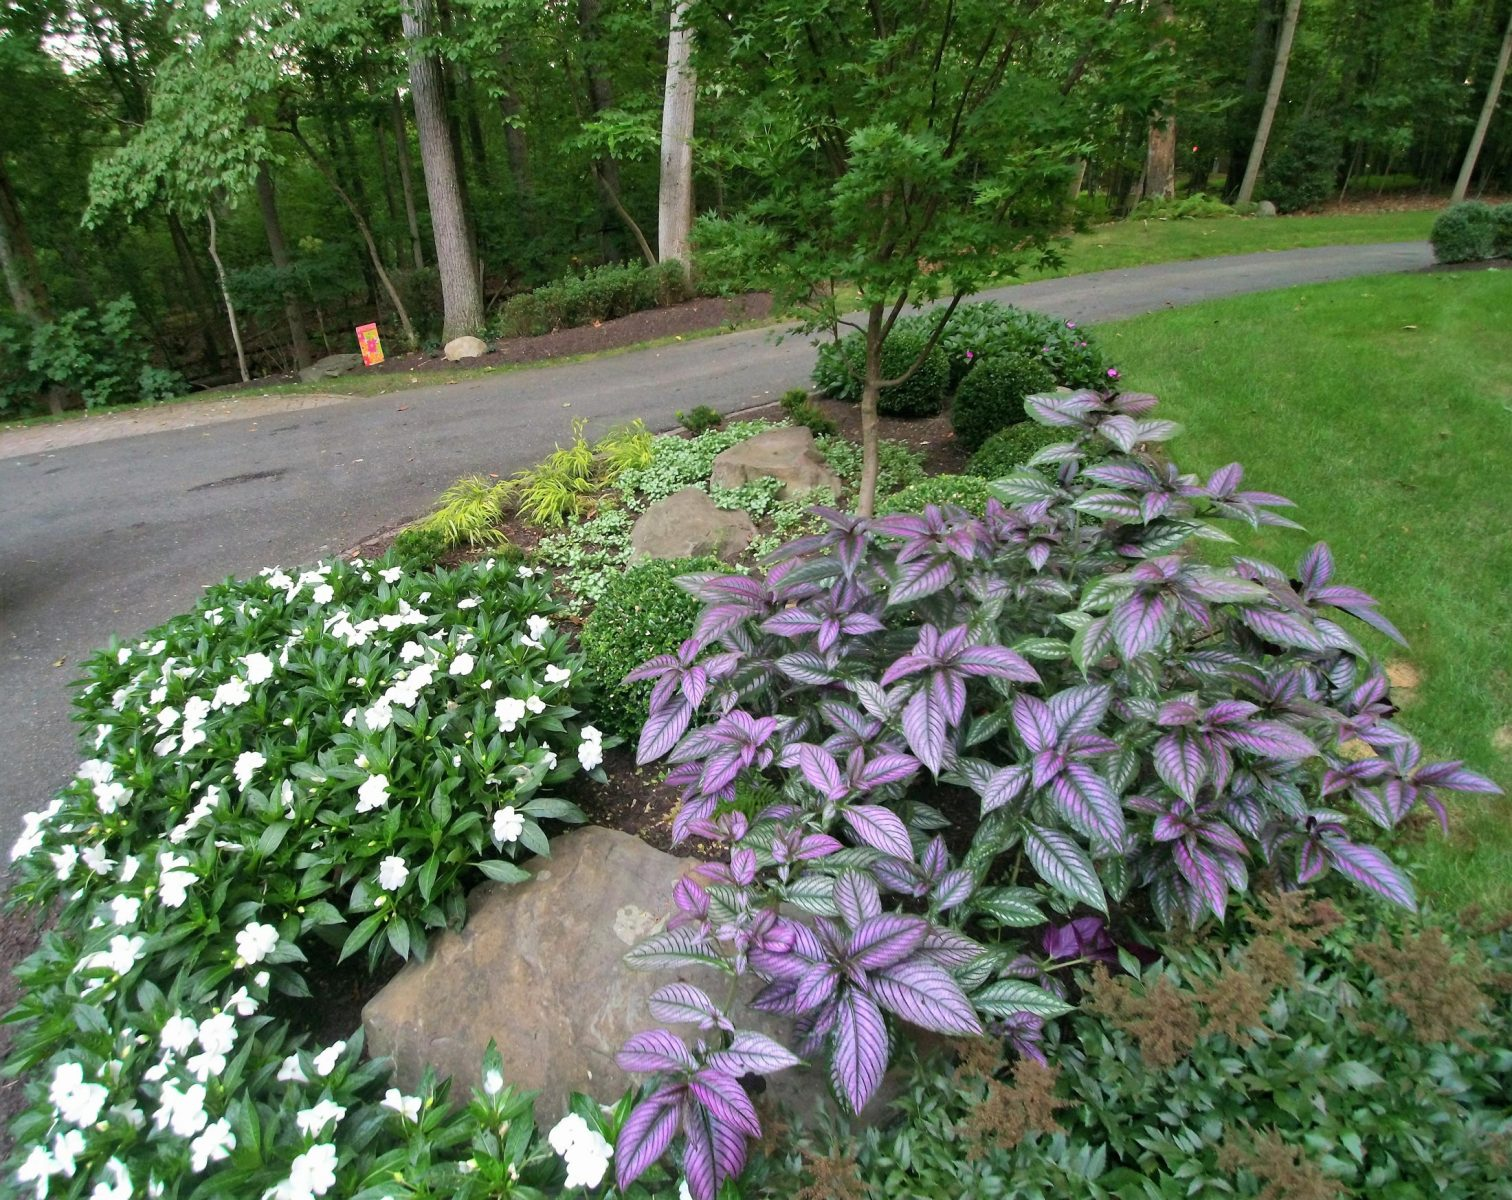 Landscaping Services in Dayton, MD